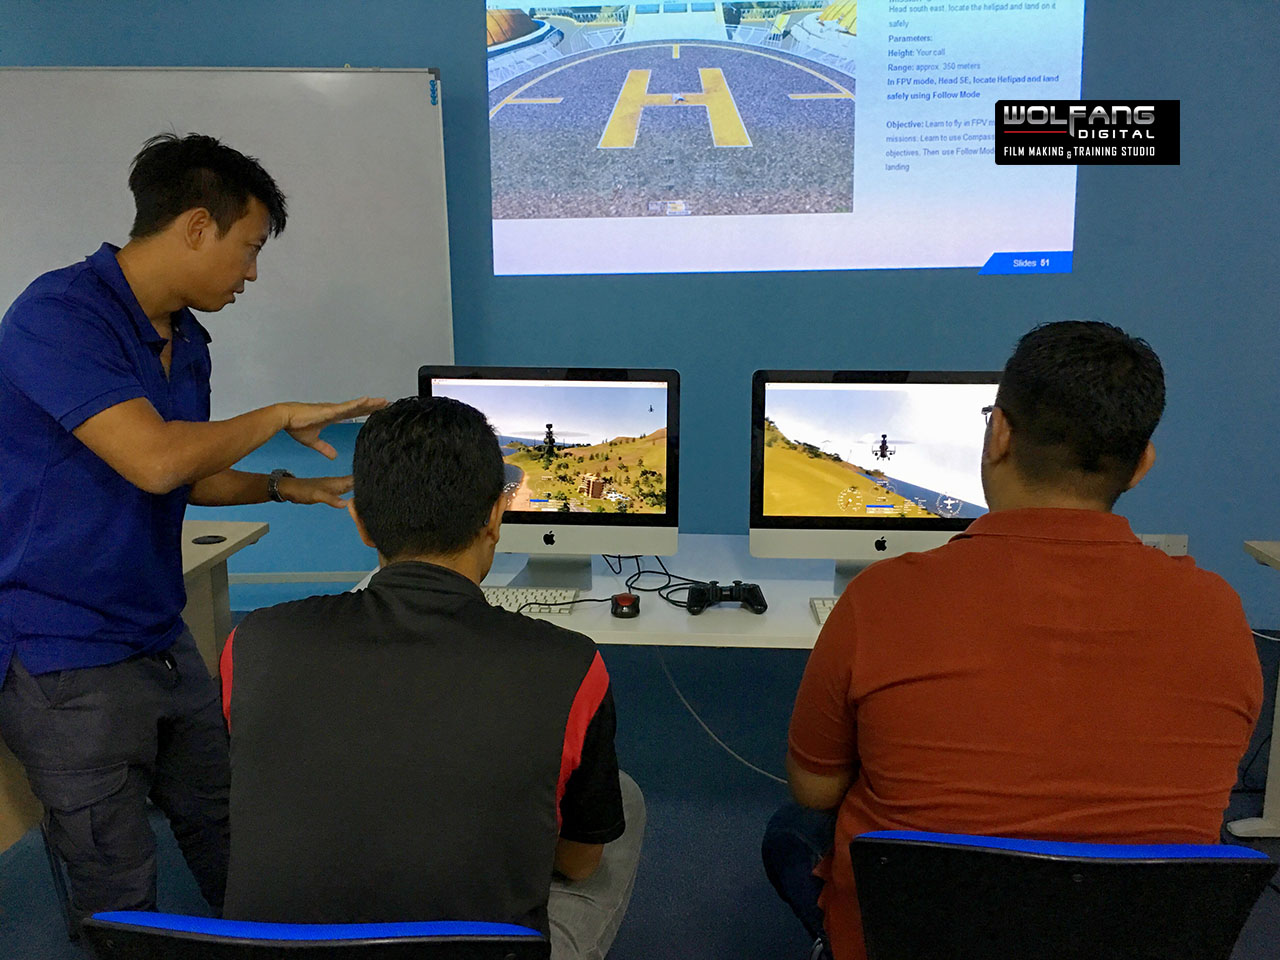 Our students become better pilots after learning to fly drones in flight simulators